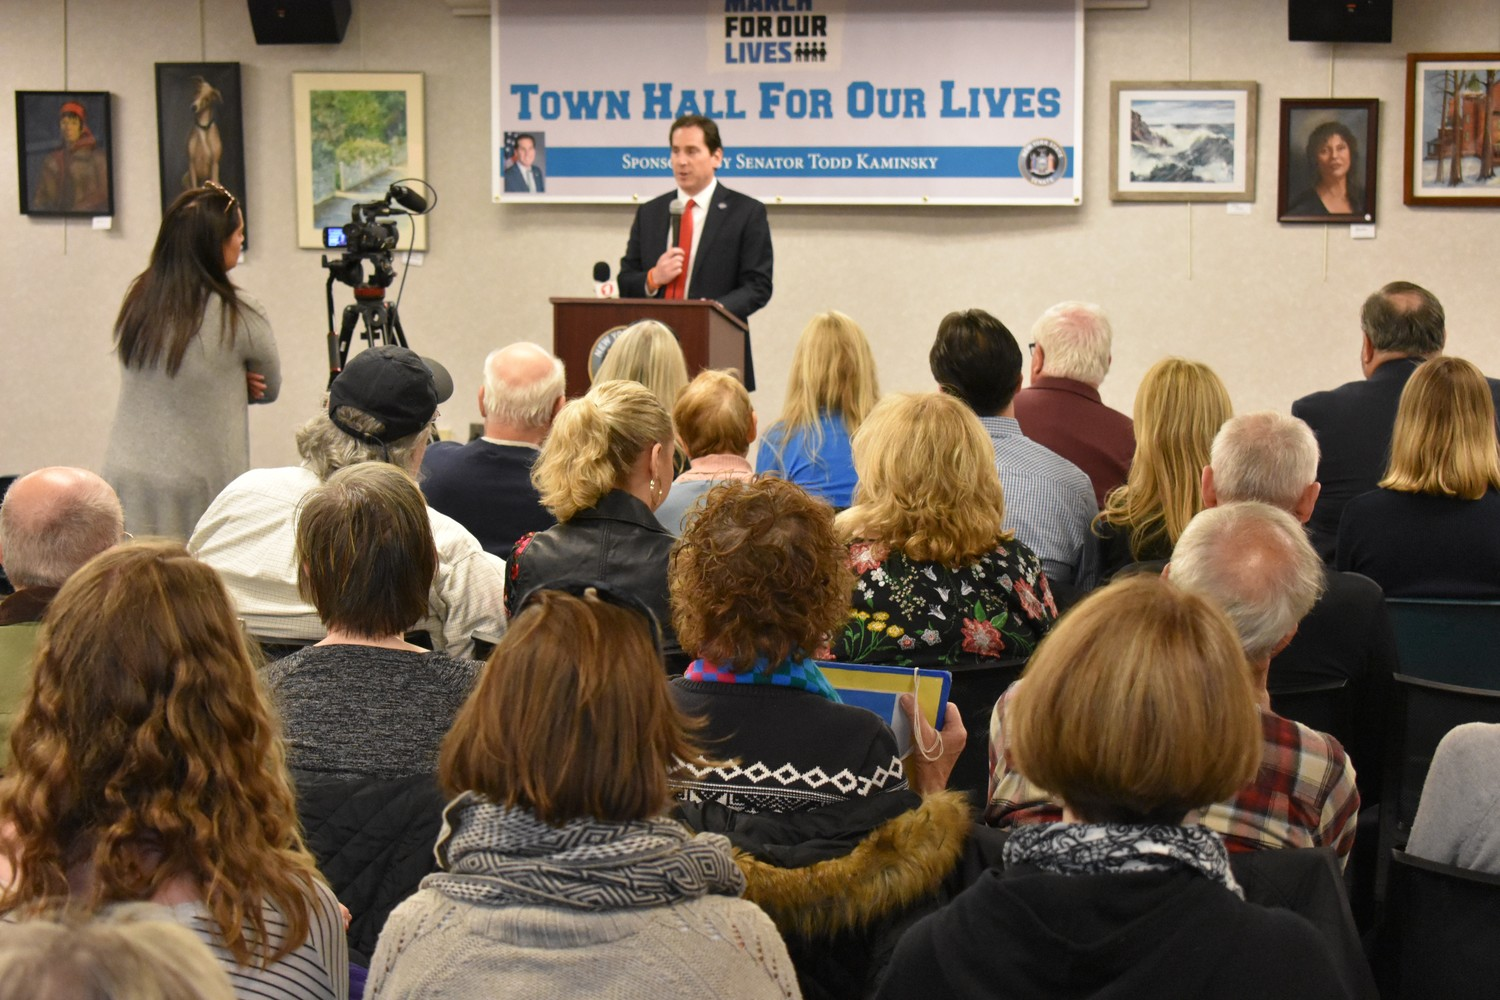 More than 100 people attended the Town Hall For Our Lives event at the Rockville Centre Public Library last Saturday.